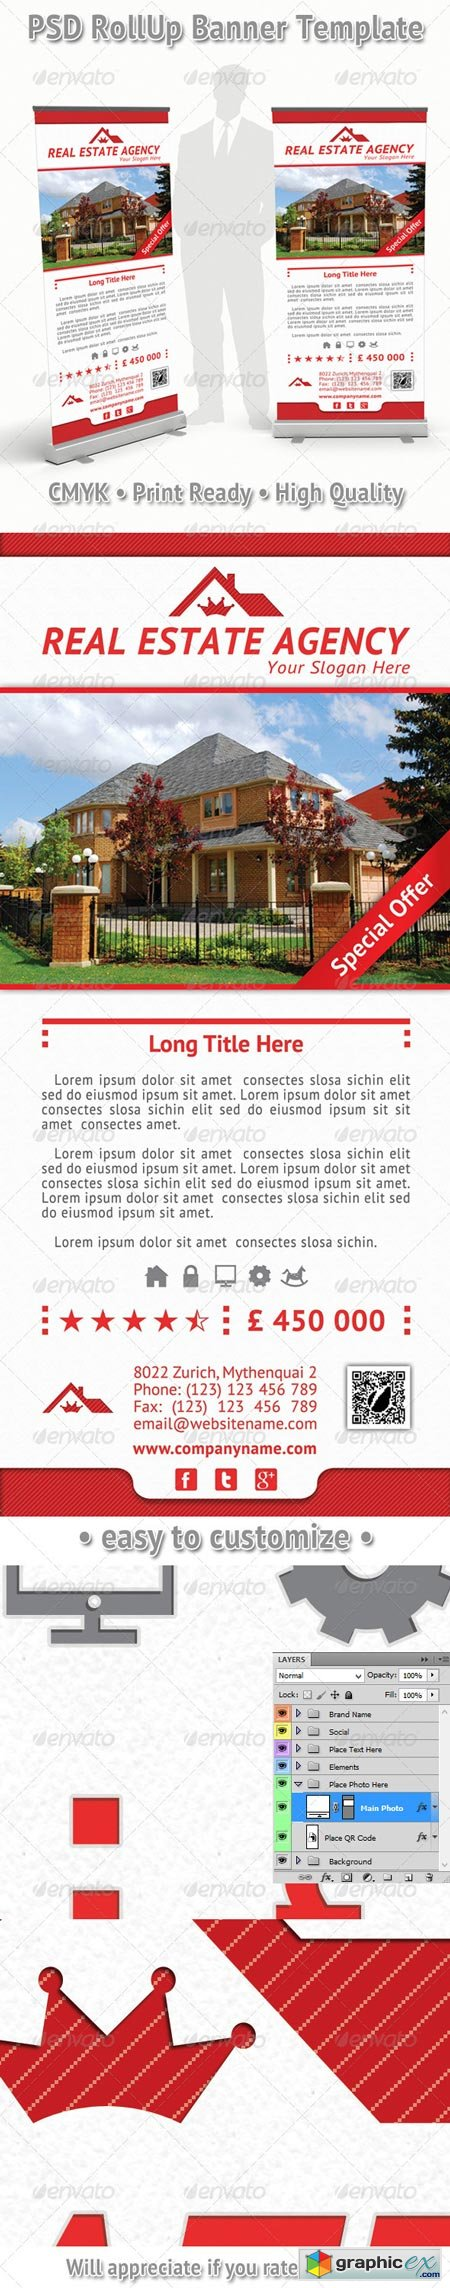 Real Estate Agency Rollup Banner 15 6913404